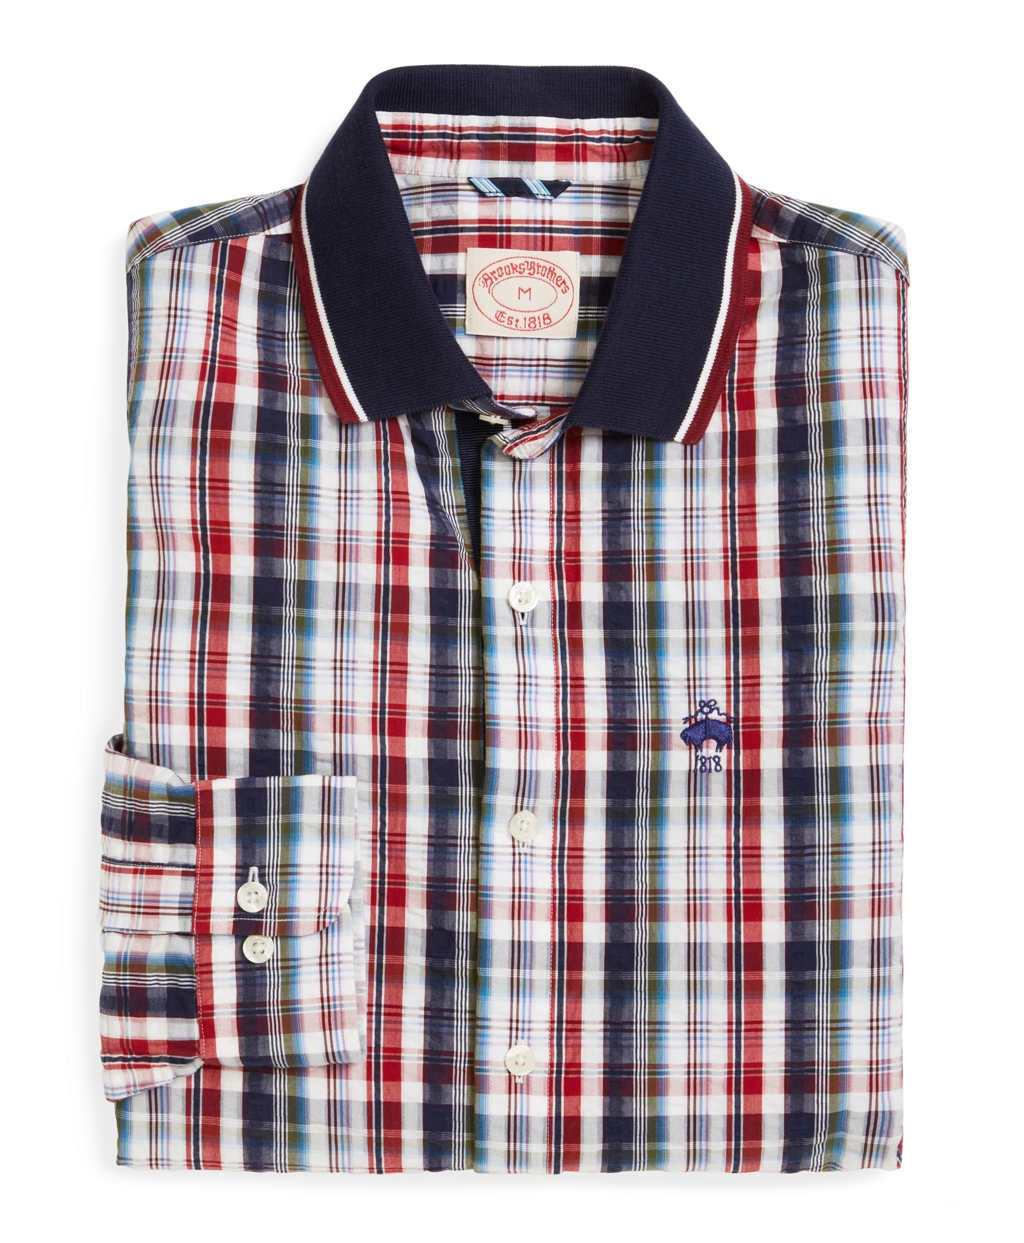 Brooks brothers seersucker americana plaid sport shirt in for Brooks brothers tall shirts